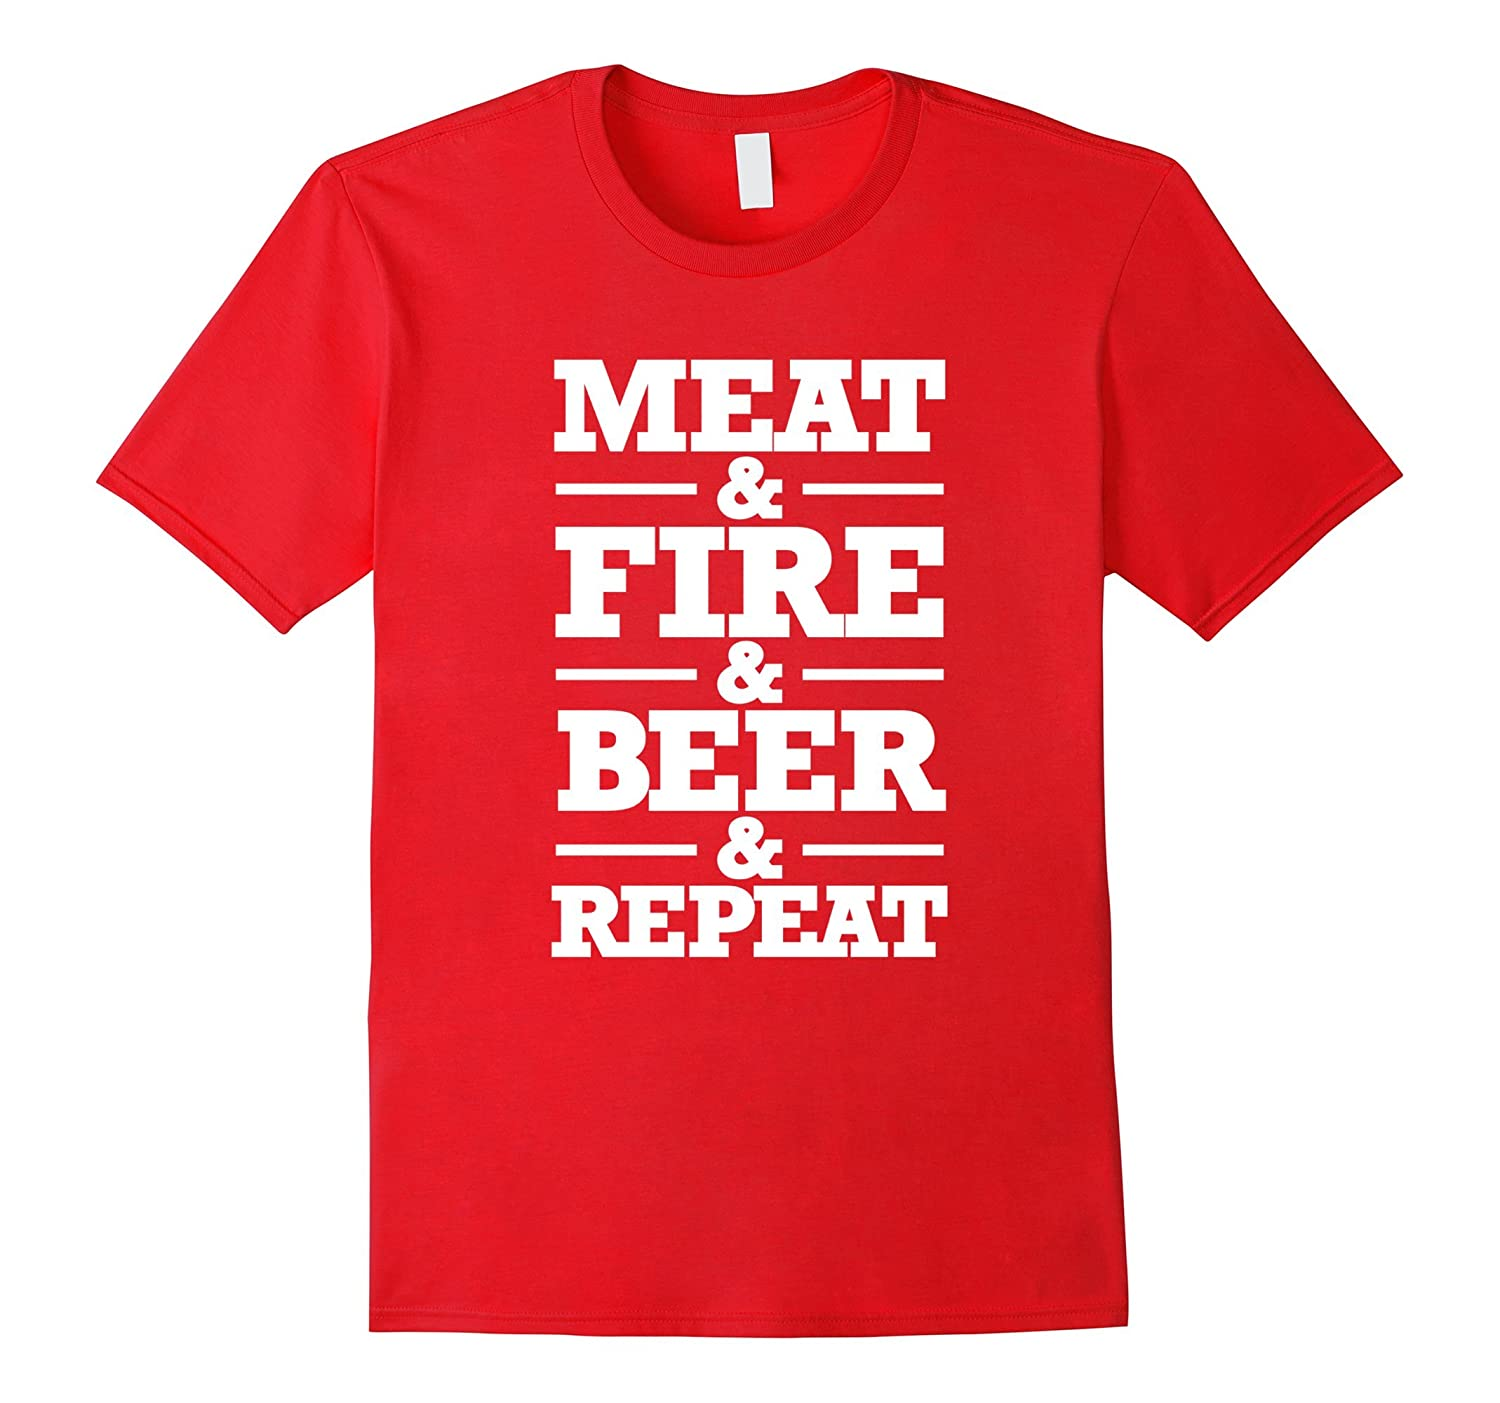 Barbecue Grill Meat BBQ T Shirt Meat & Fire & Beer & Repeat-TH